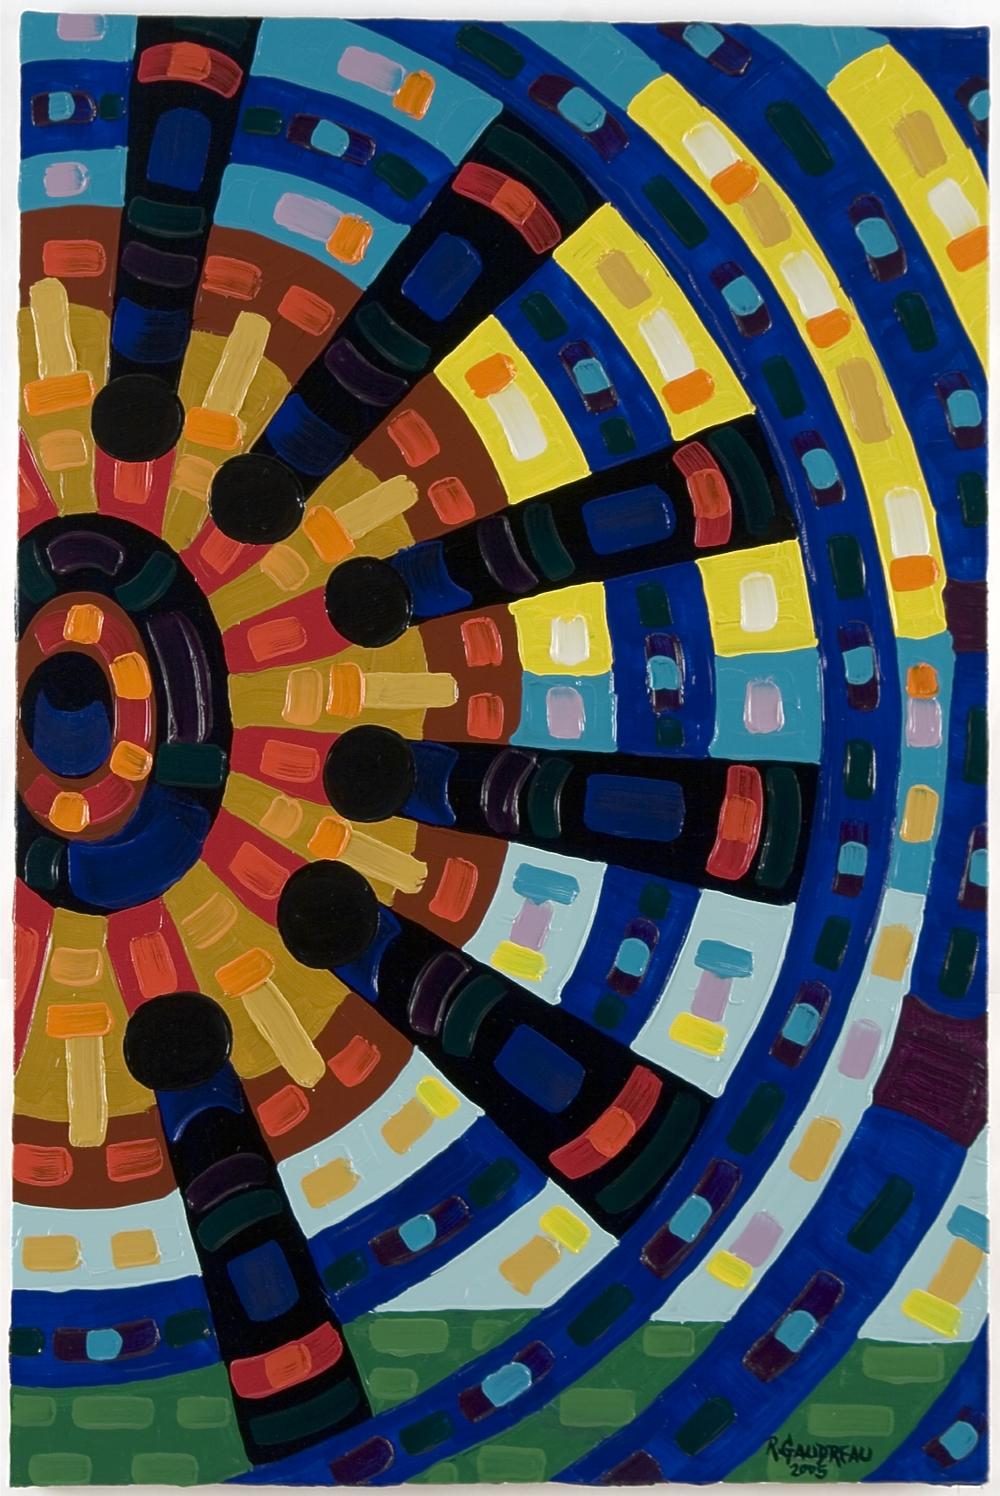 Fan     2005 oil on linen 36 x 24 inches